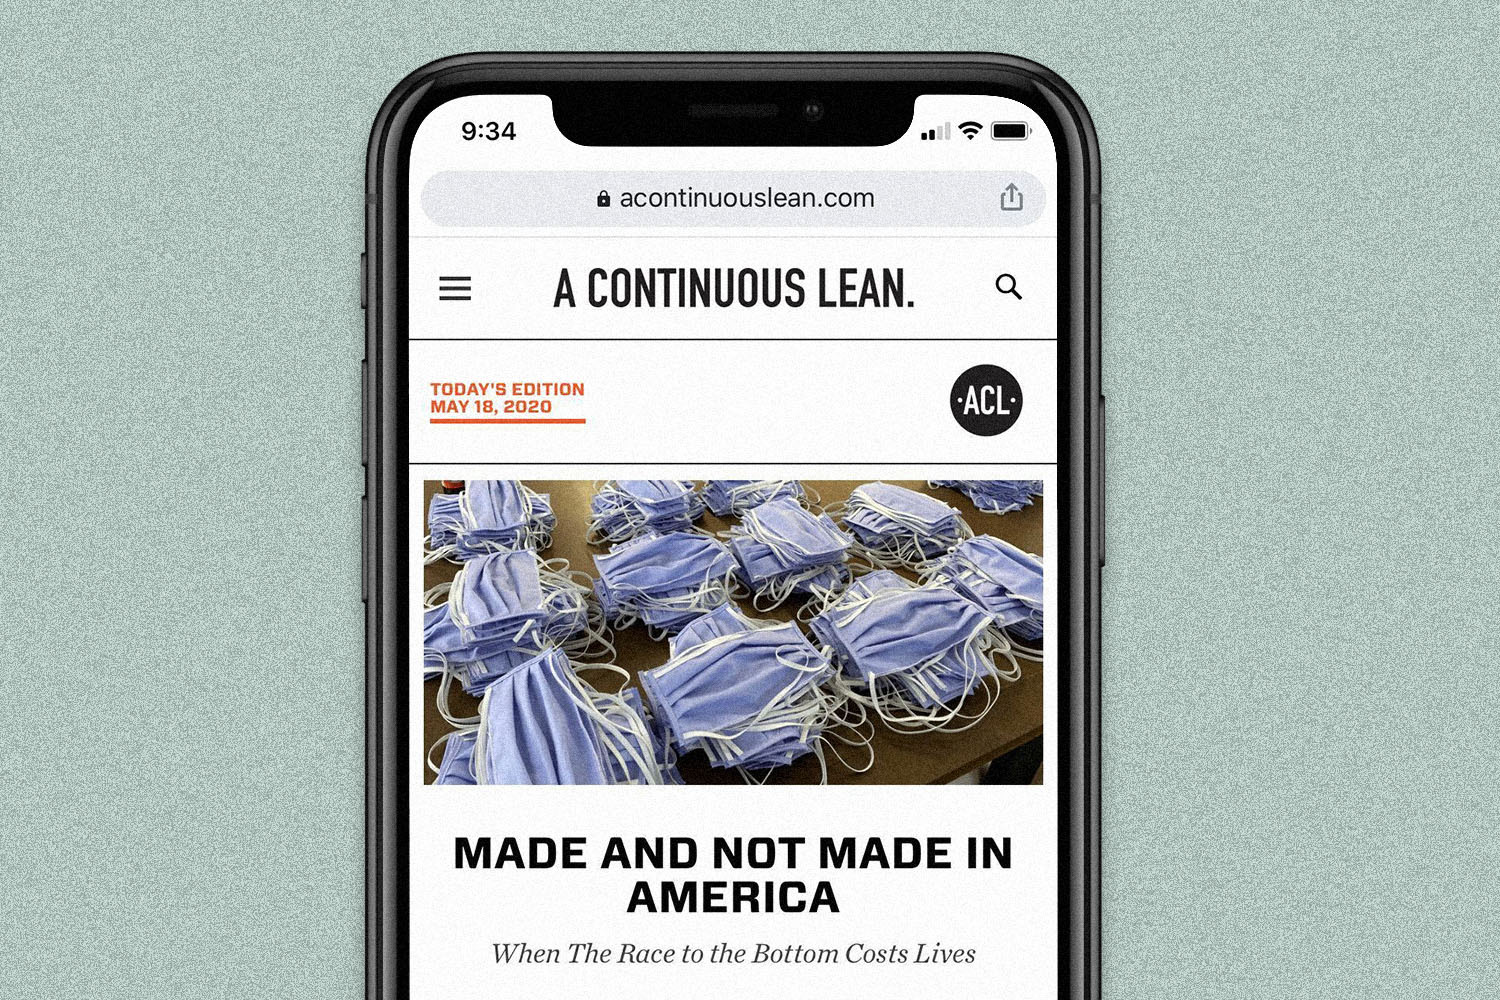 A Continuous Lean is displayed on a smartphone's screen